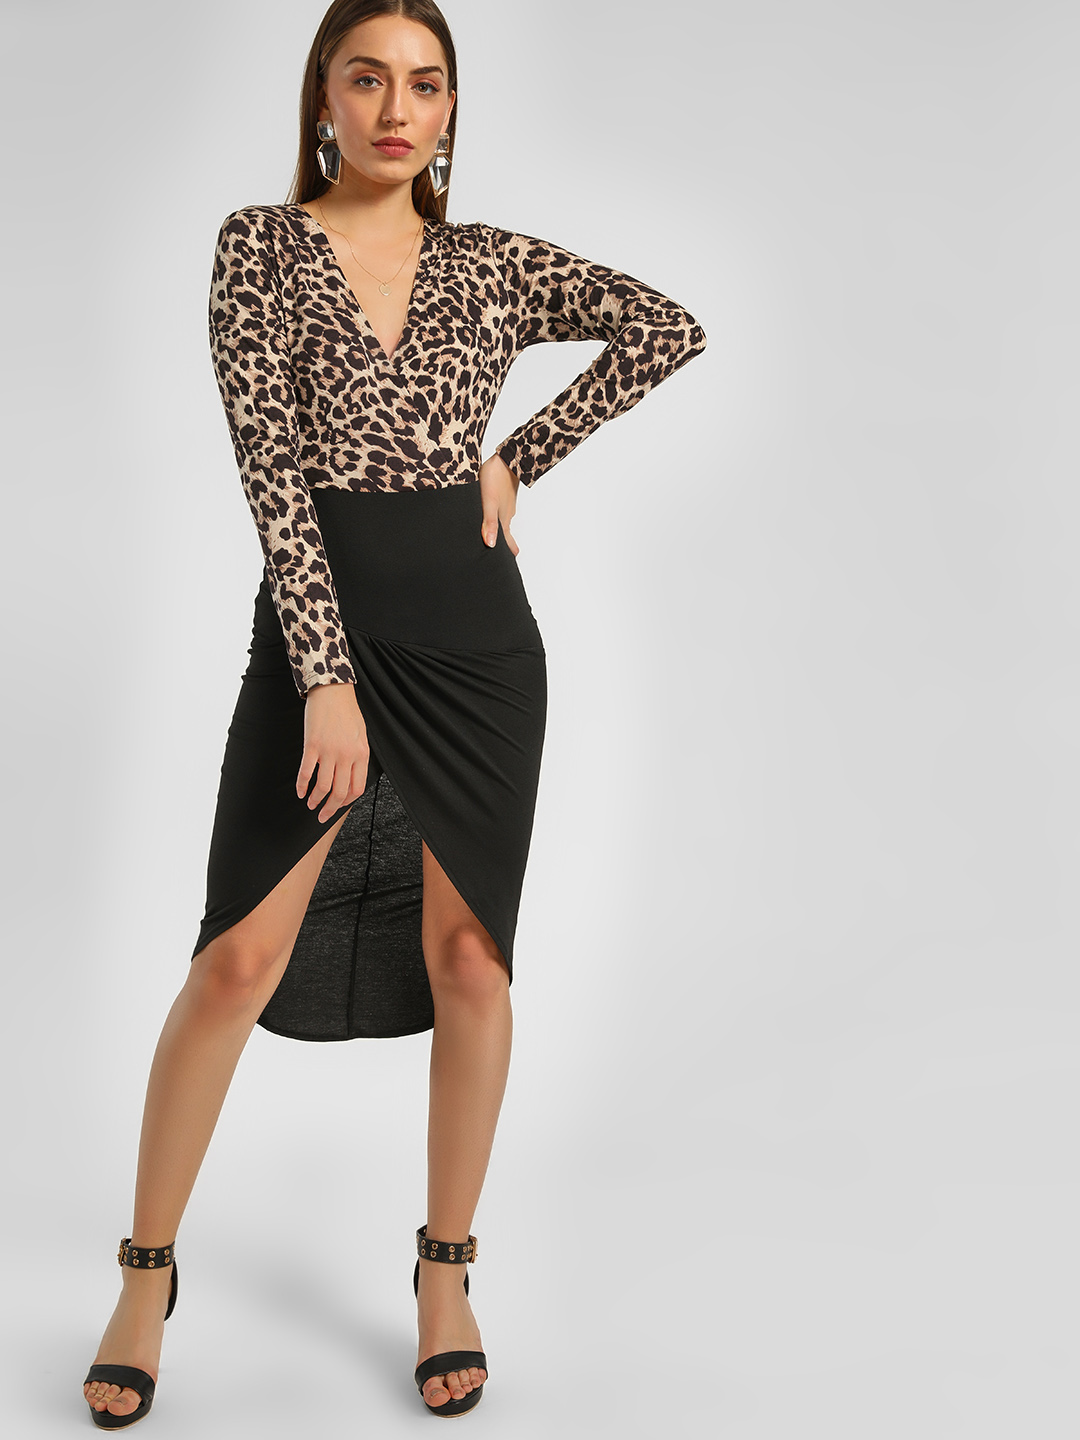 Ax Paris Multi Animal Print Midi Dress 1